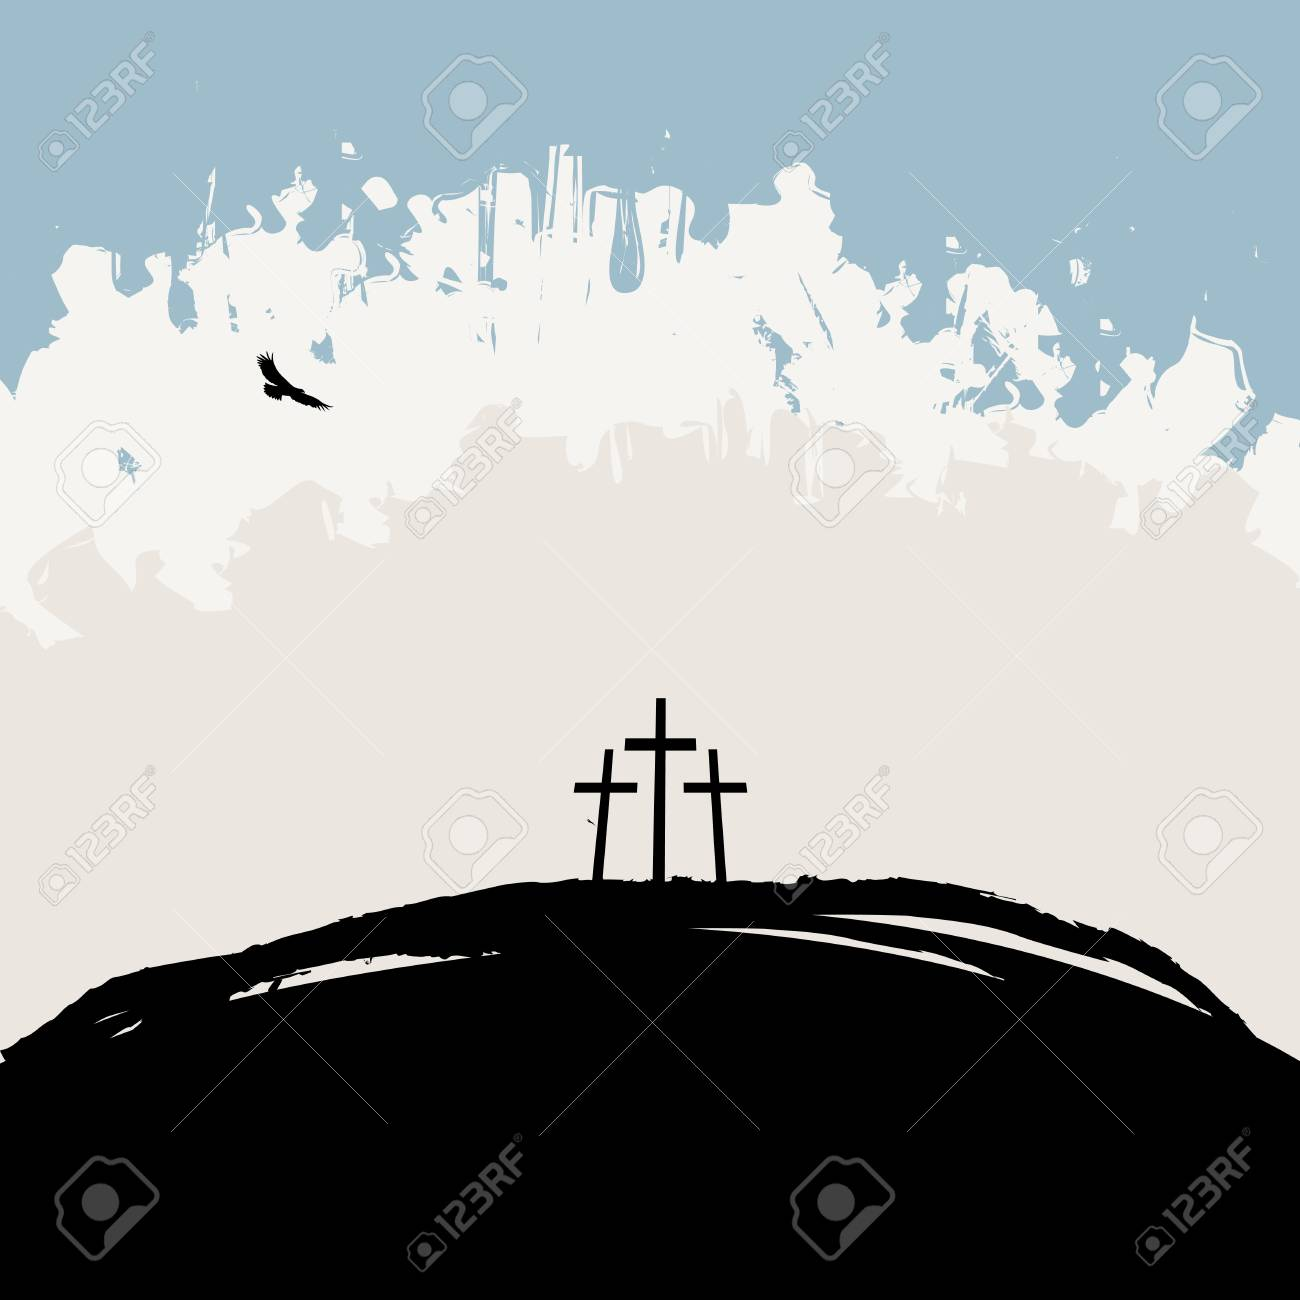 Vector illustration on Christian theme with three crosses on Mount Calvary on abstract grunge background - 106819679